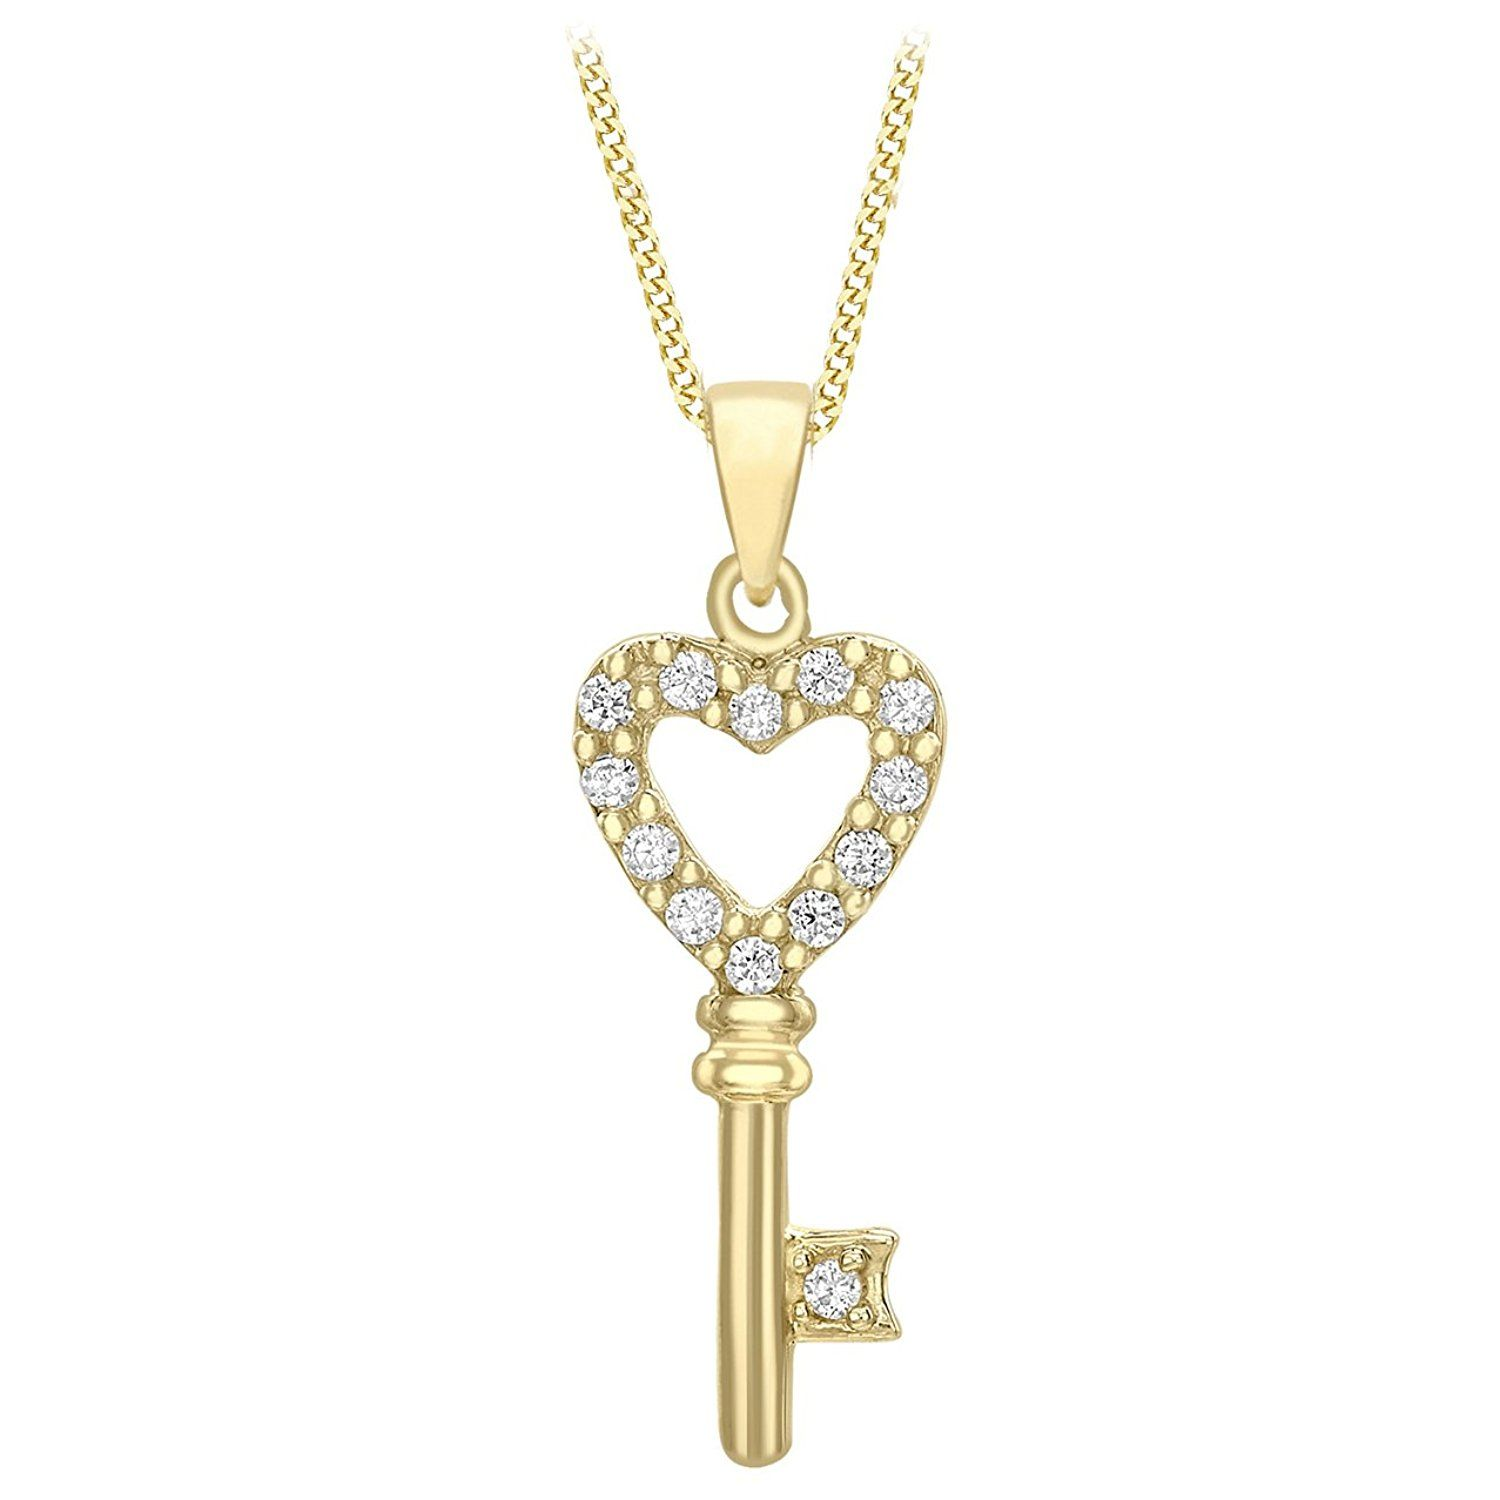 Carissima Gold 9 ct Yellow Gold 9 Cubic Zirconia Bar Drop Pendant on Curb Chain Necklace uHInc